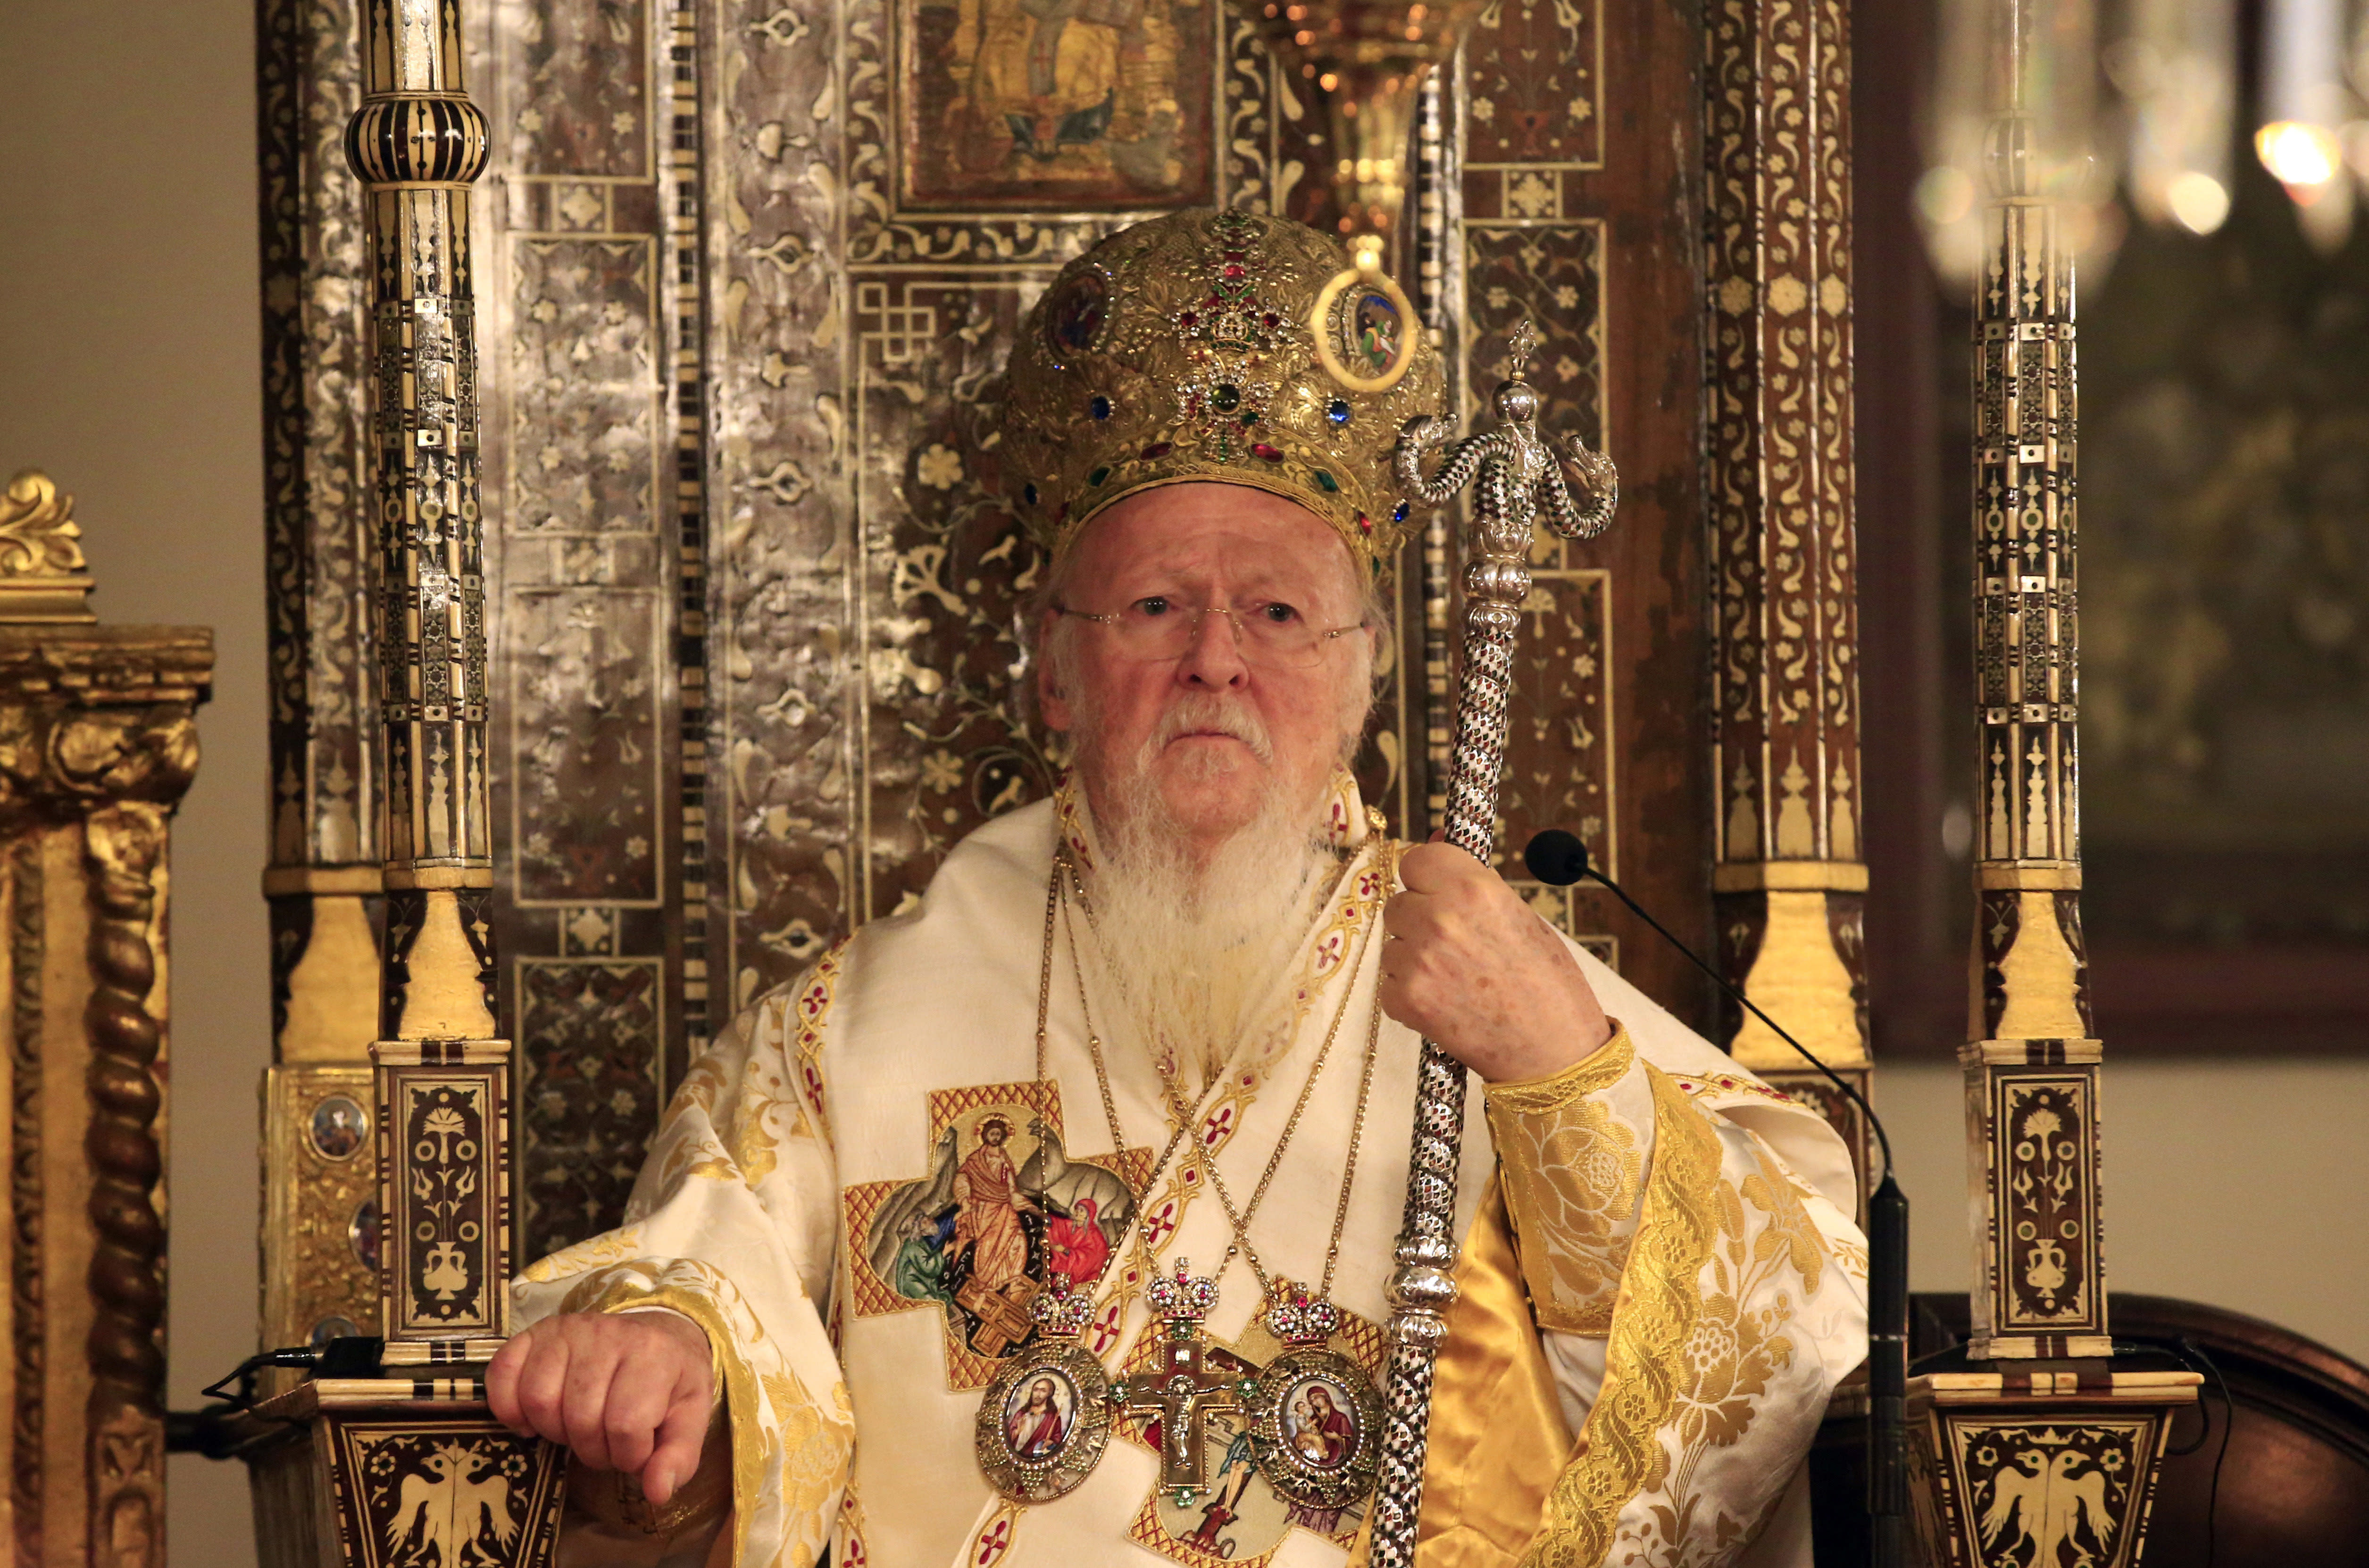 FILE - In this early Sunday, April 16, 2017 file photo, Ecumenical Patriarch Bartholomew I, the spiritual leader of the world's Orthodox Christians, leads the Easter Resurrection Service at the Patriarchal Cathedral of St. George in Istanbul, Turkey. The Russian hackers indicted by the U.S. special prosecutor in July 2018 have spent years trying to steal the private correspondence of some of the world's most senior Christian Orthodox figures, including top aides to Bartholomew, The Associated Press has found, illustrating the high stakes as Kiev and Moscow wrestle over the religious future of Ukraine. (AP Photo/Lefteris Pitarakis, File)